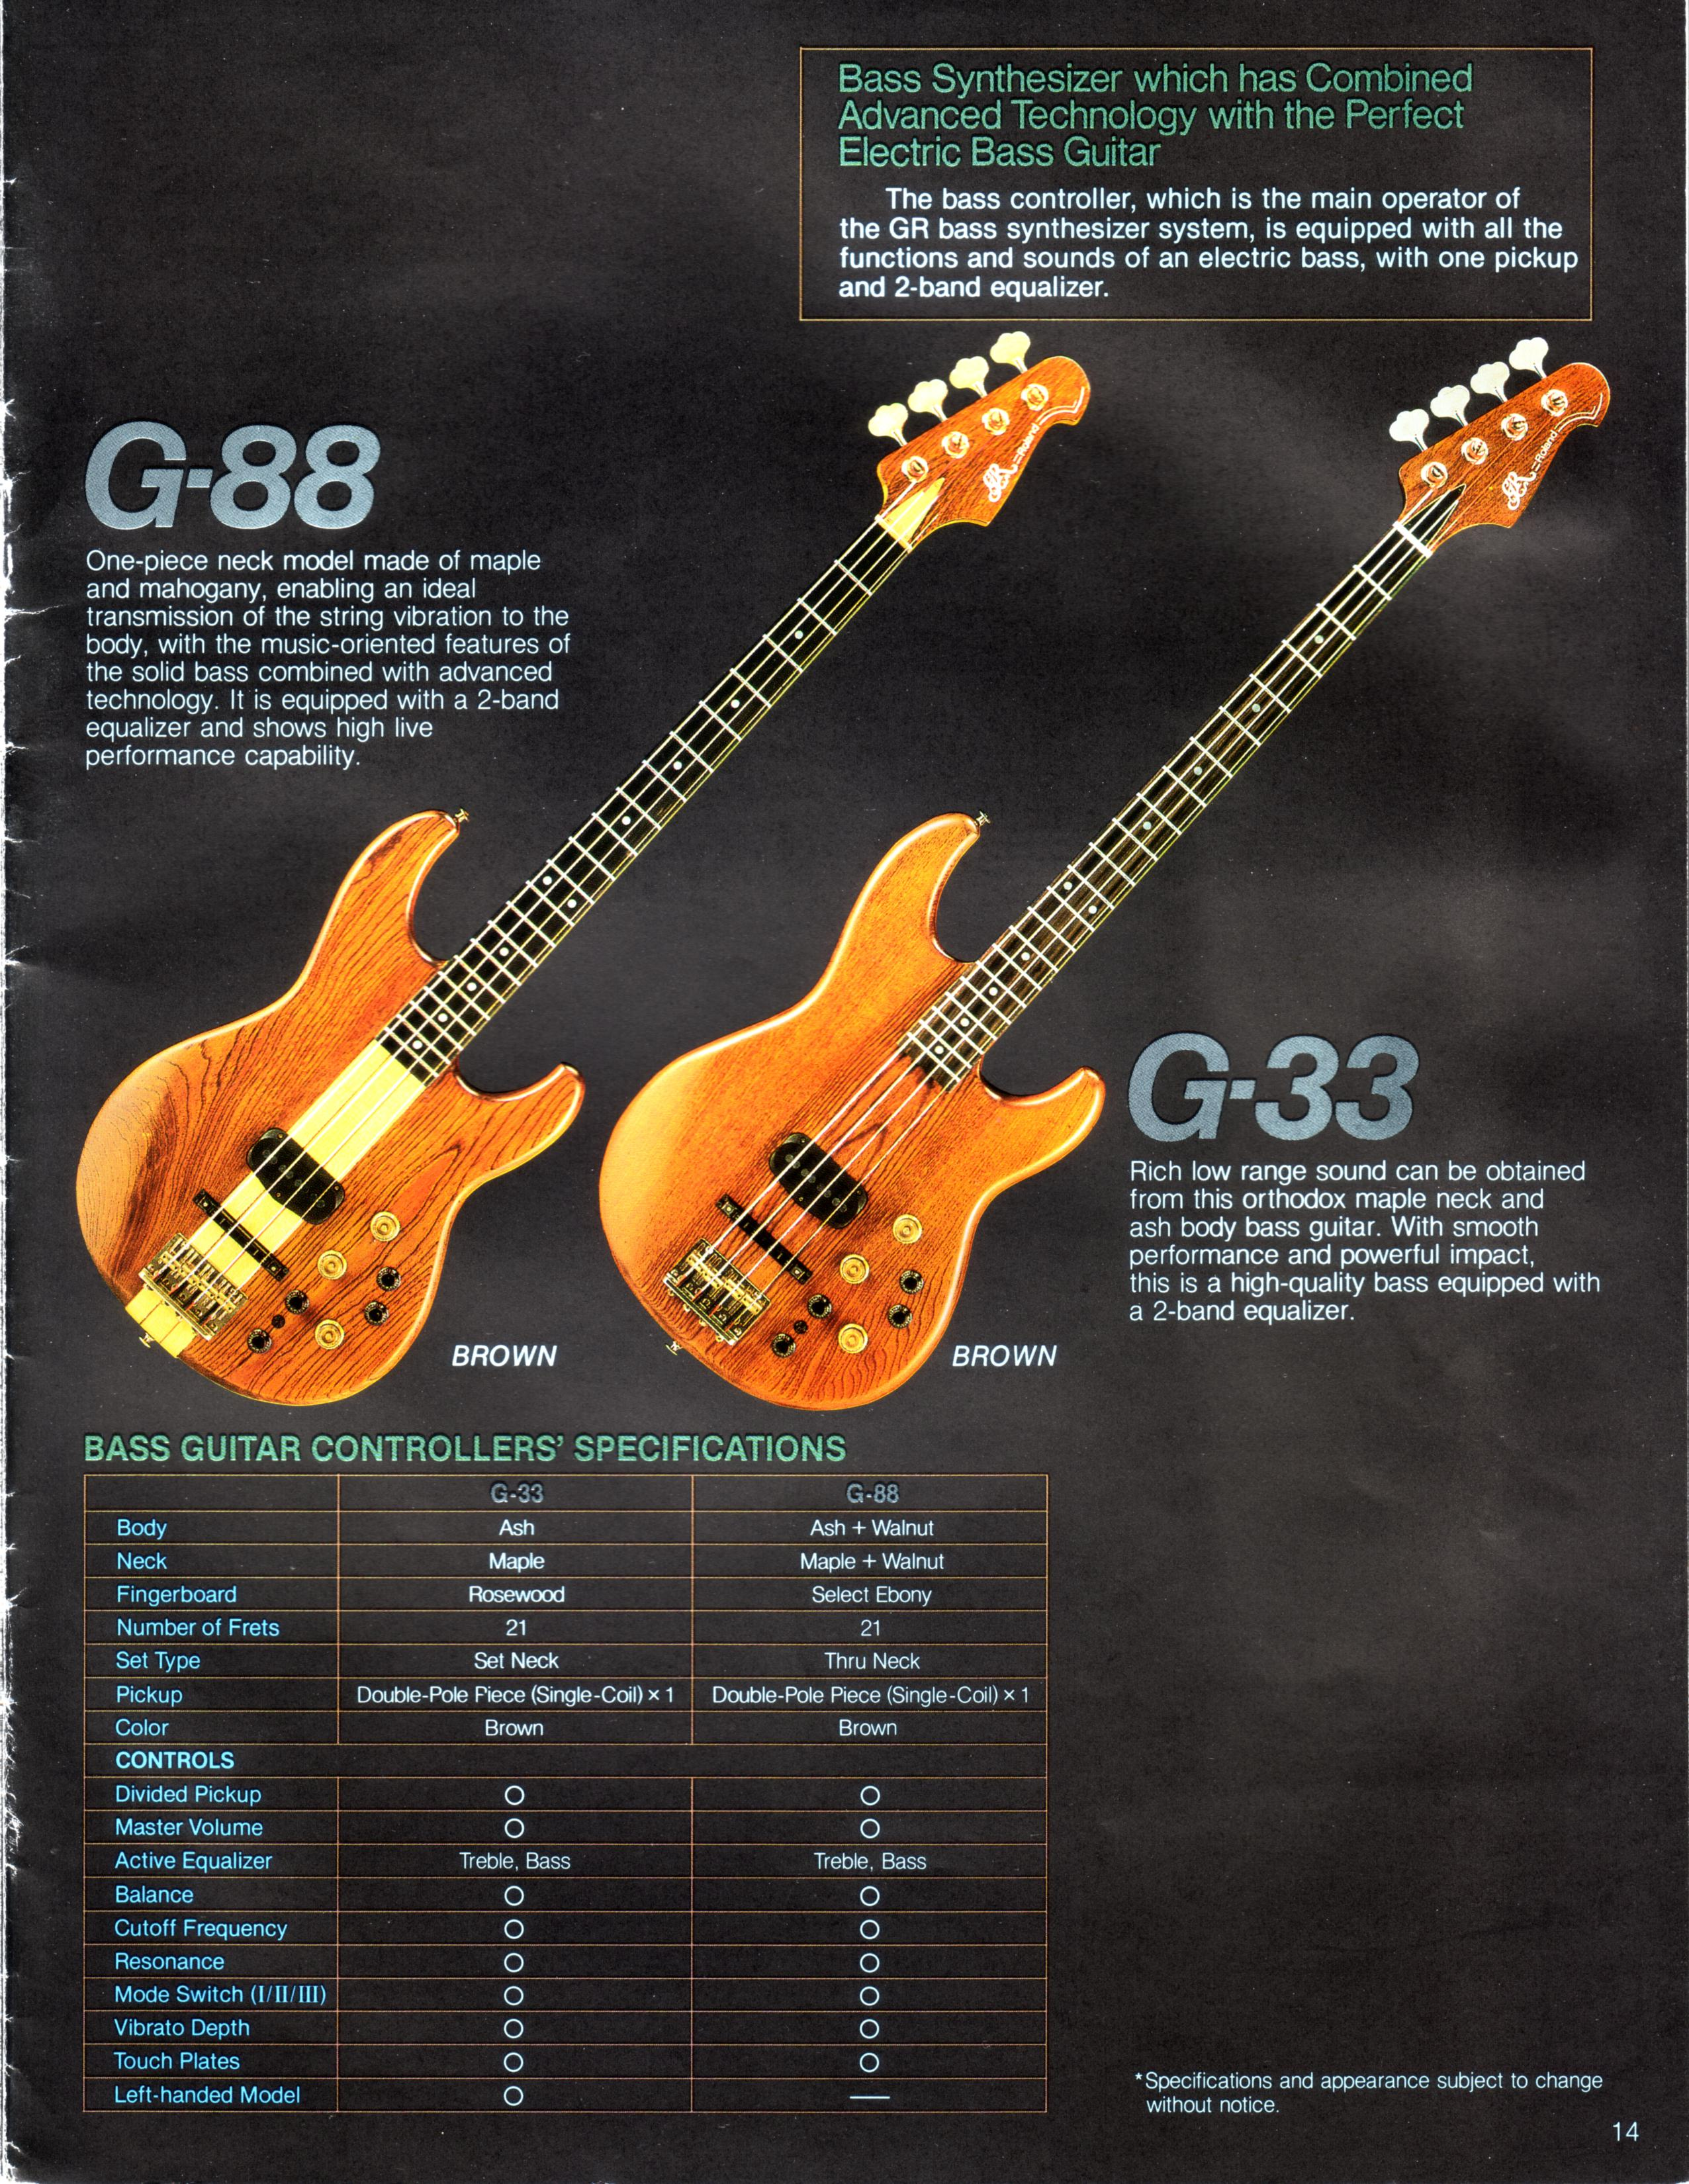 Roland 1984 Gr 700 And G 707 Brochure Complete Vintage Custom Jazz Bass Mod Master Volume Tone Balance Control Click On Any Image For Larger View